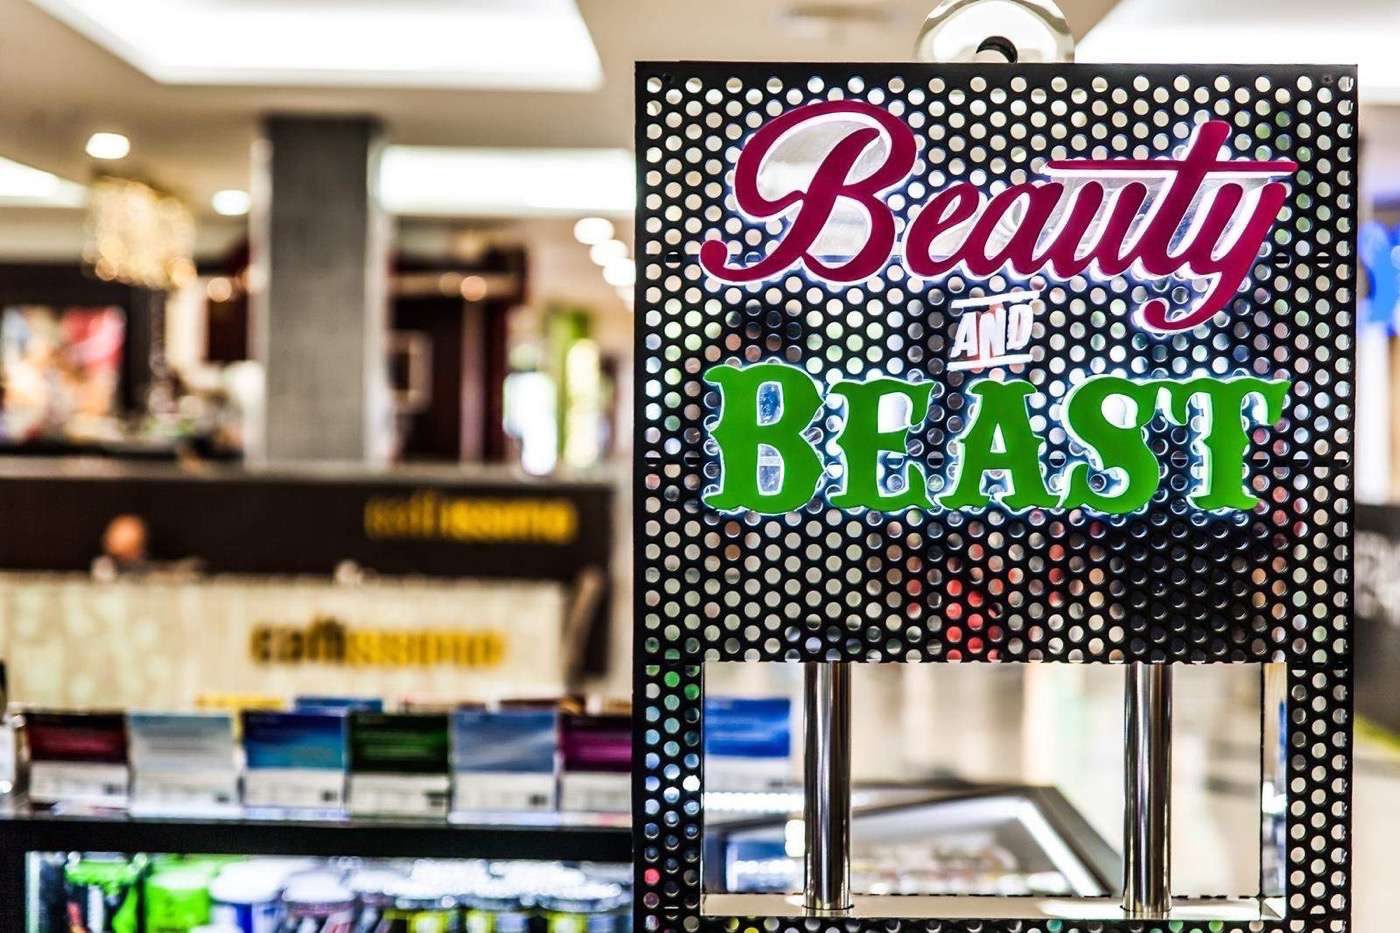 Beauty Beast Muscle Supplement Kiosk 12 SQM